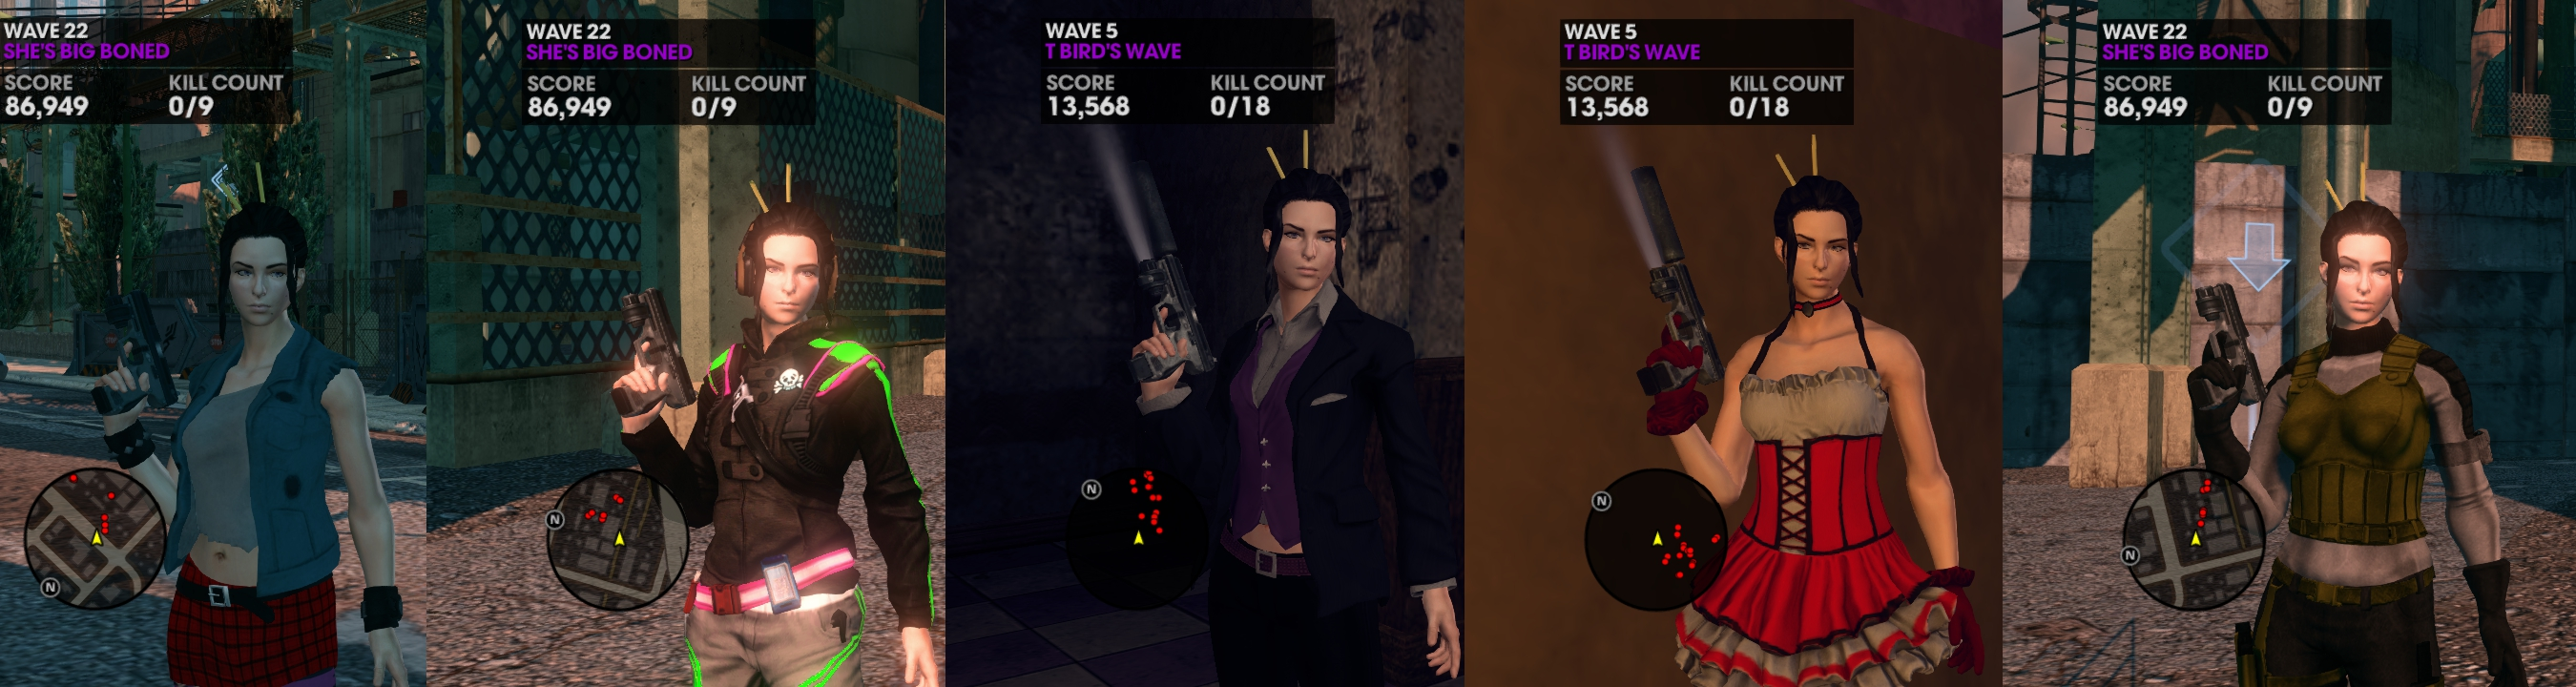 The saints row series is known for a lot of things, but memorable characters aren 2019t high on that list